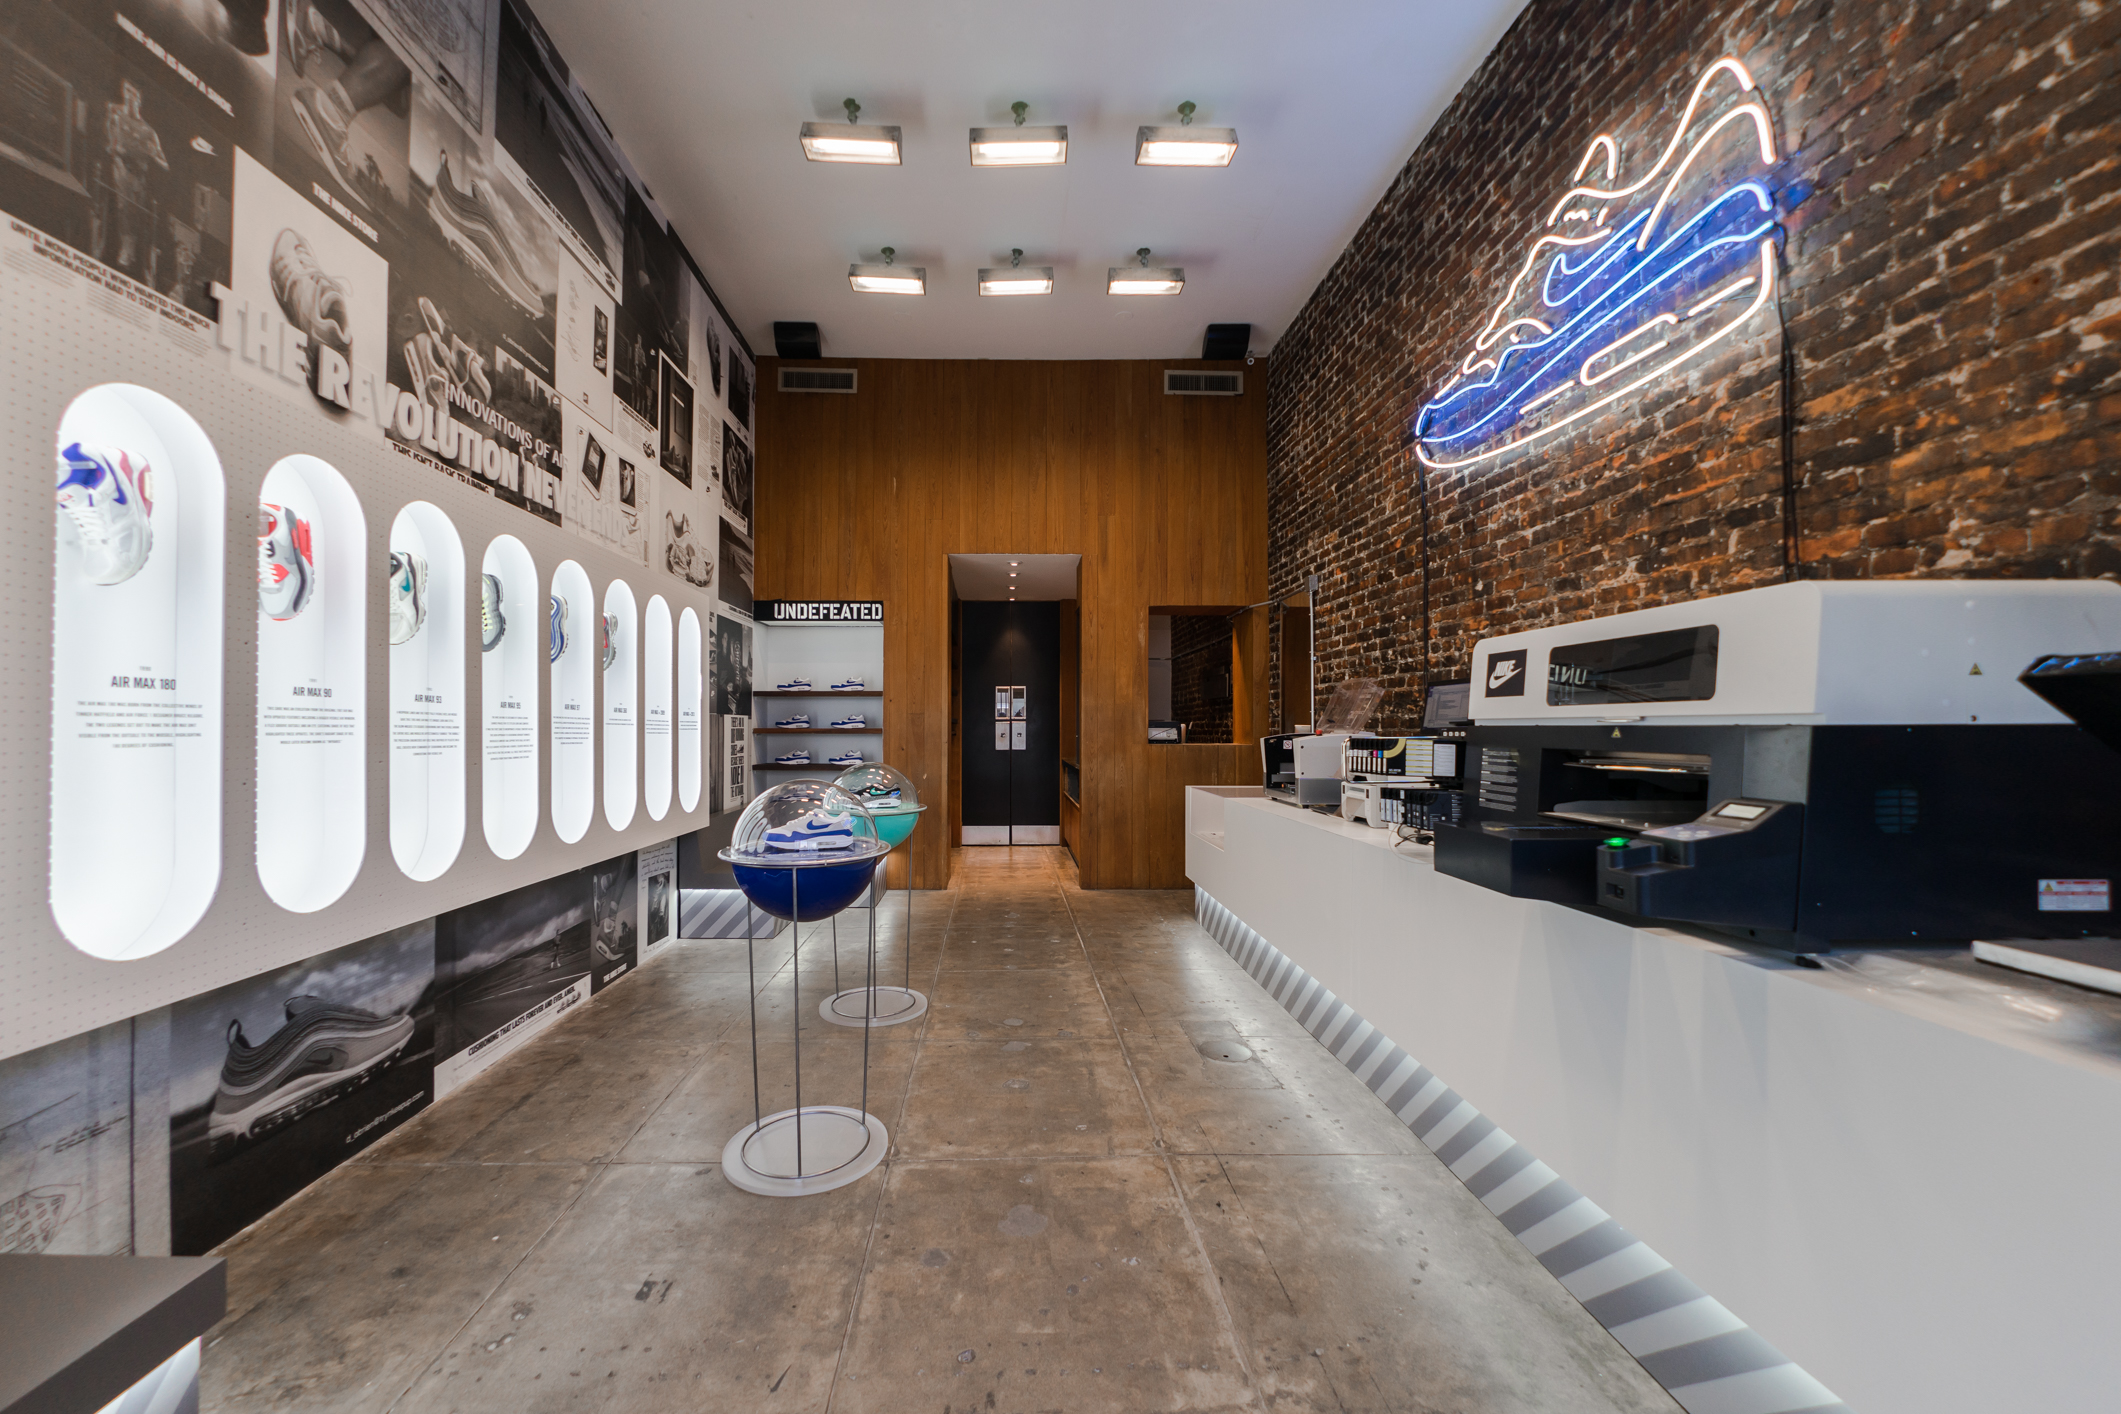 Nike Preps Sneakeasy Pop-Up for New Air Max Launch